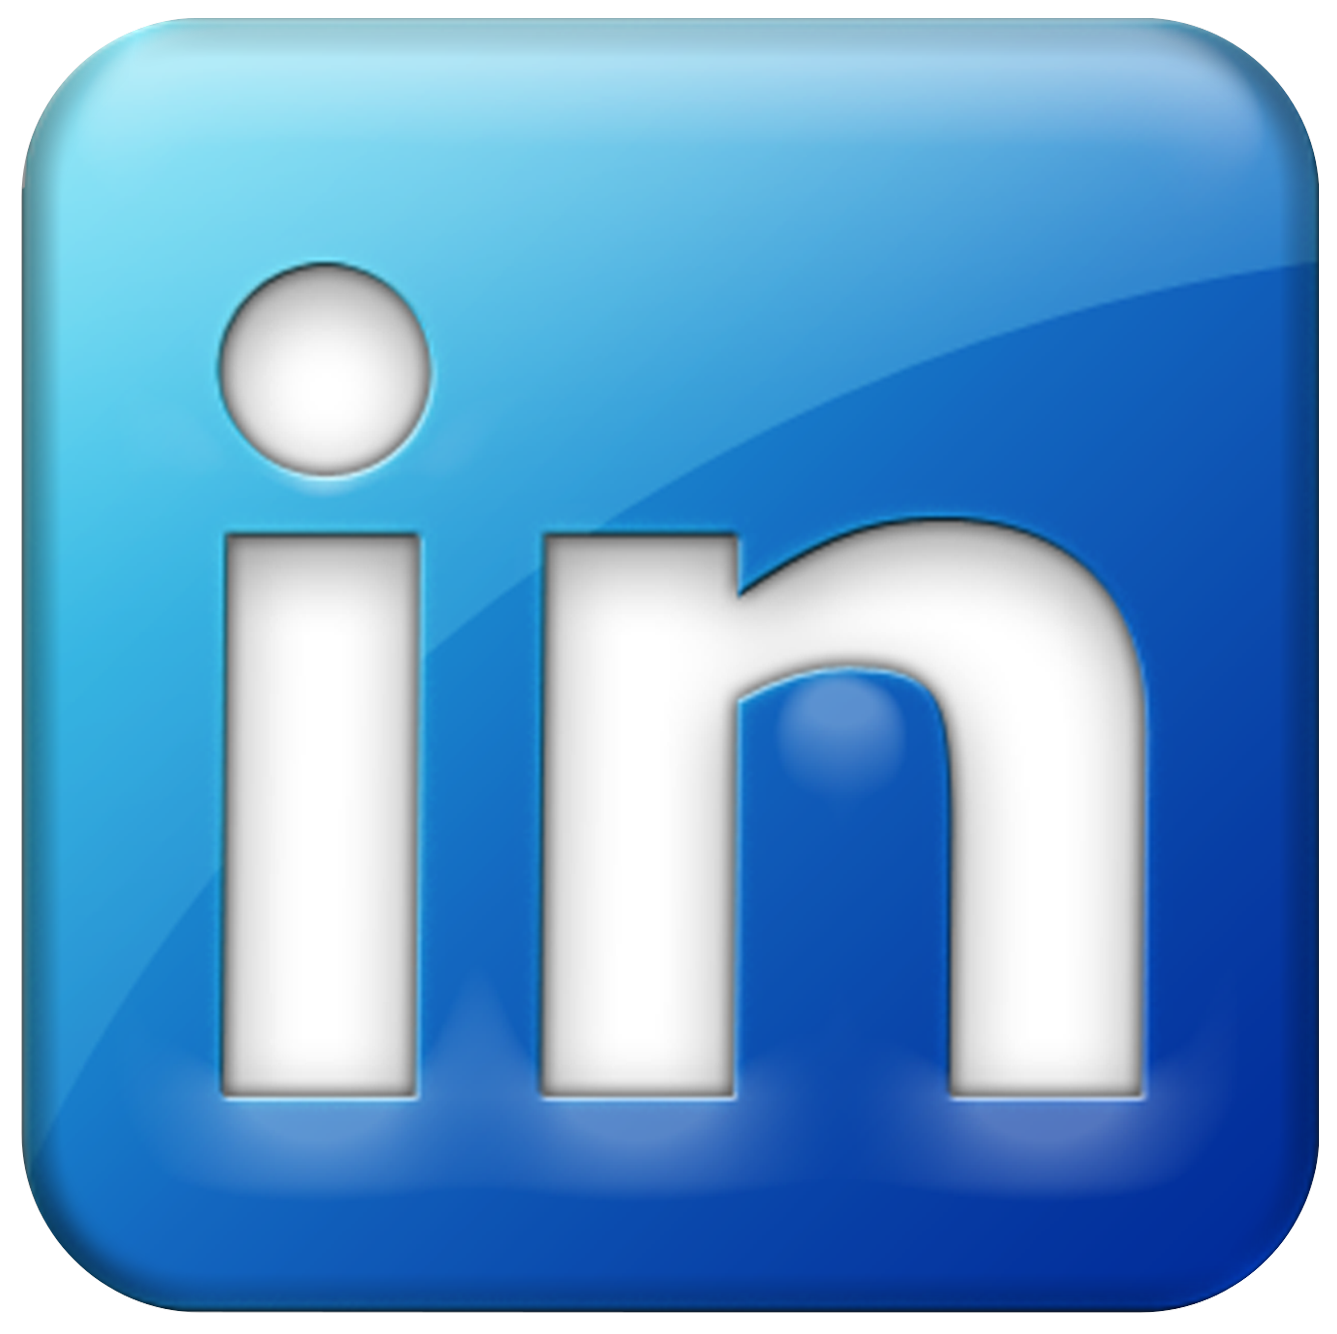 Linkedin Icon Png Transparent Images & Pictures Becuo